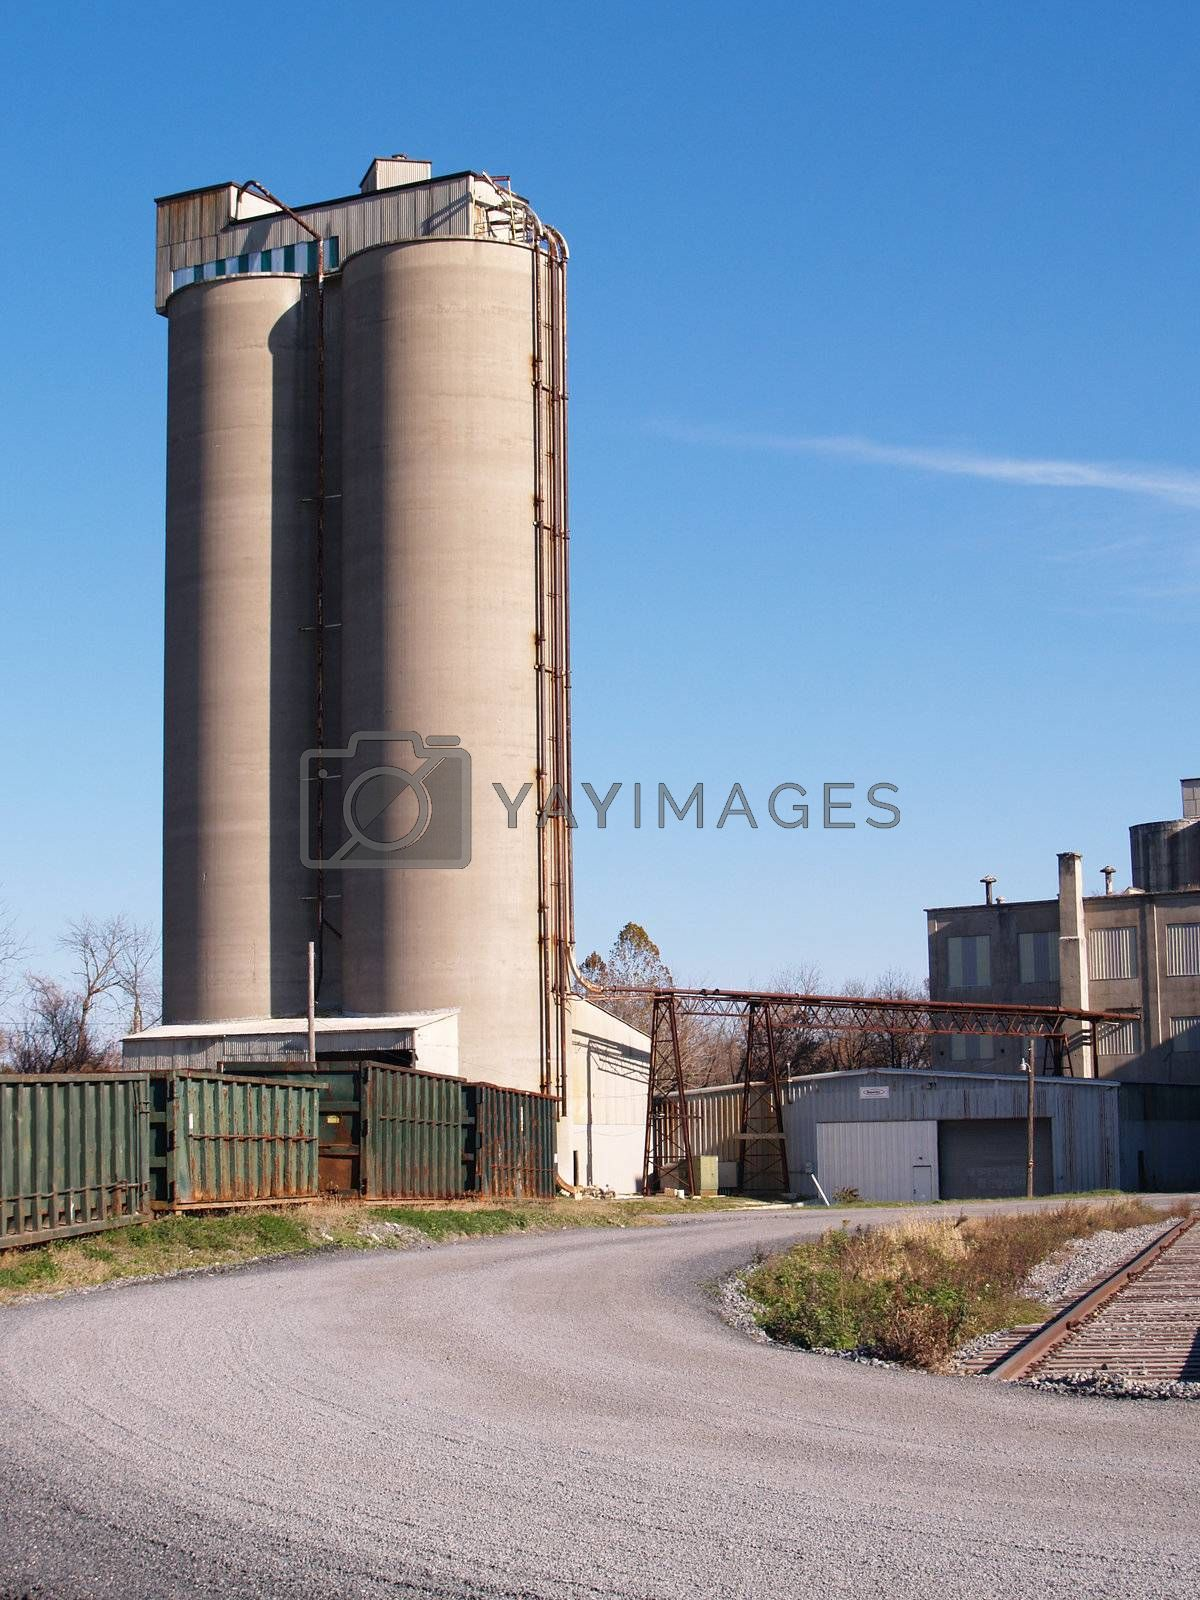 storage towers at an industrial site